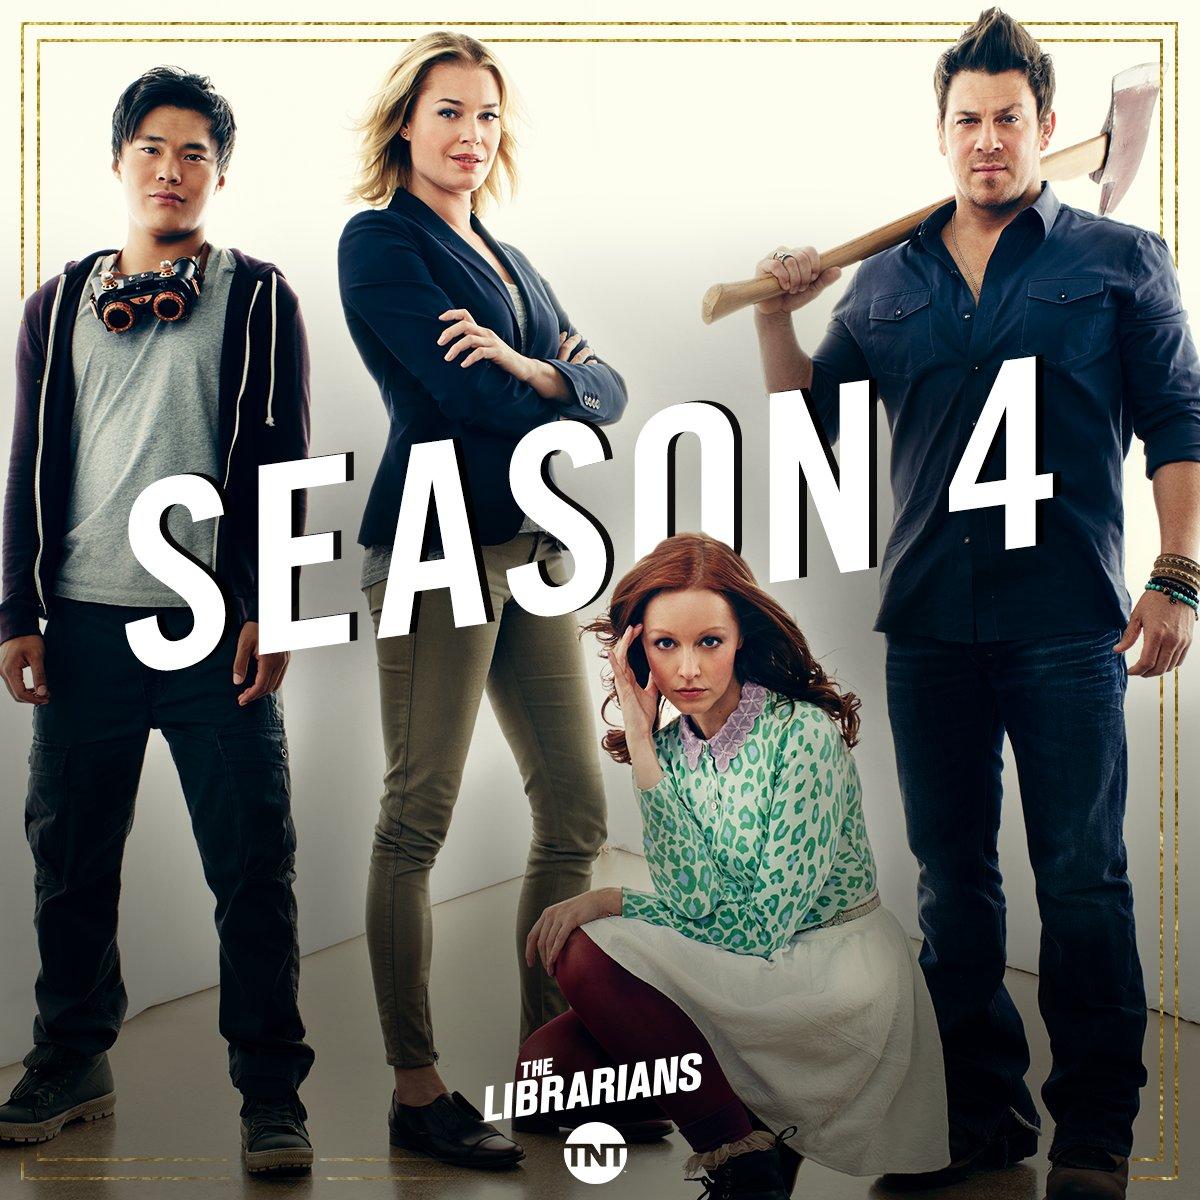 It is with profound joy that i get to tell you #TheLibrarians has been officially picked up for season 4! https://t.co/ctq8sdL9Ws